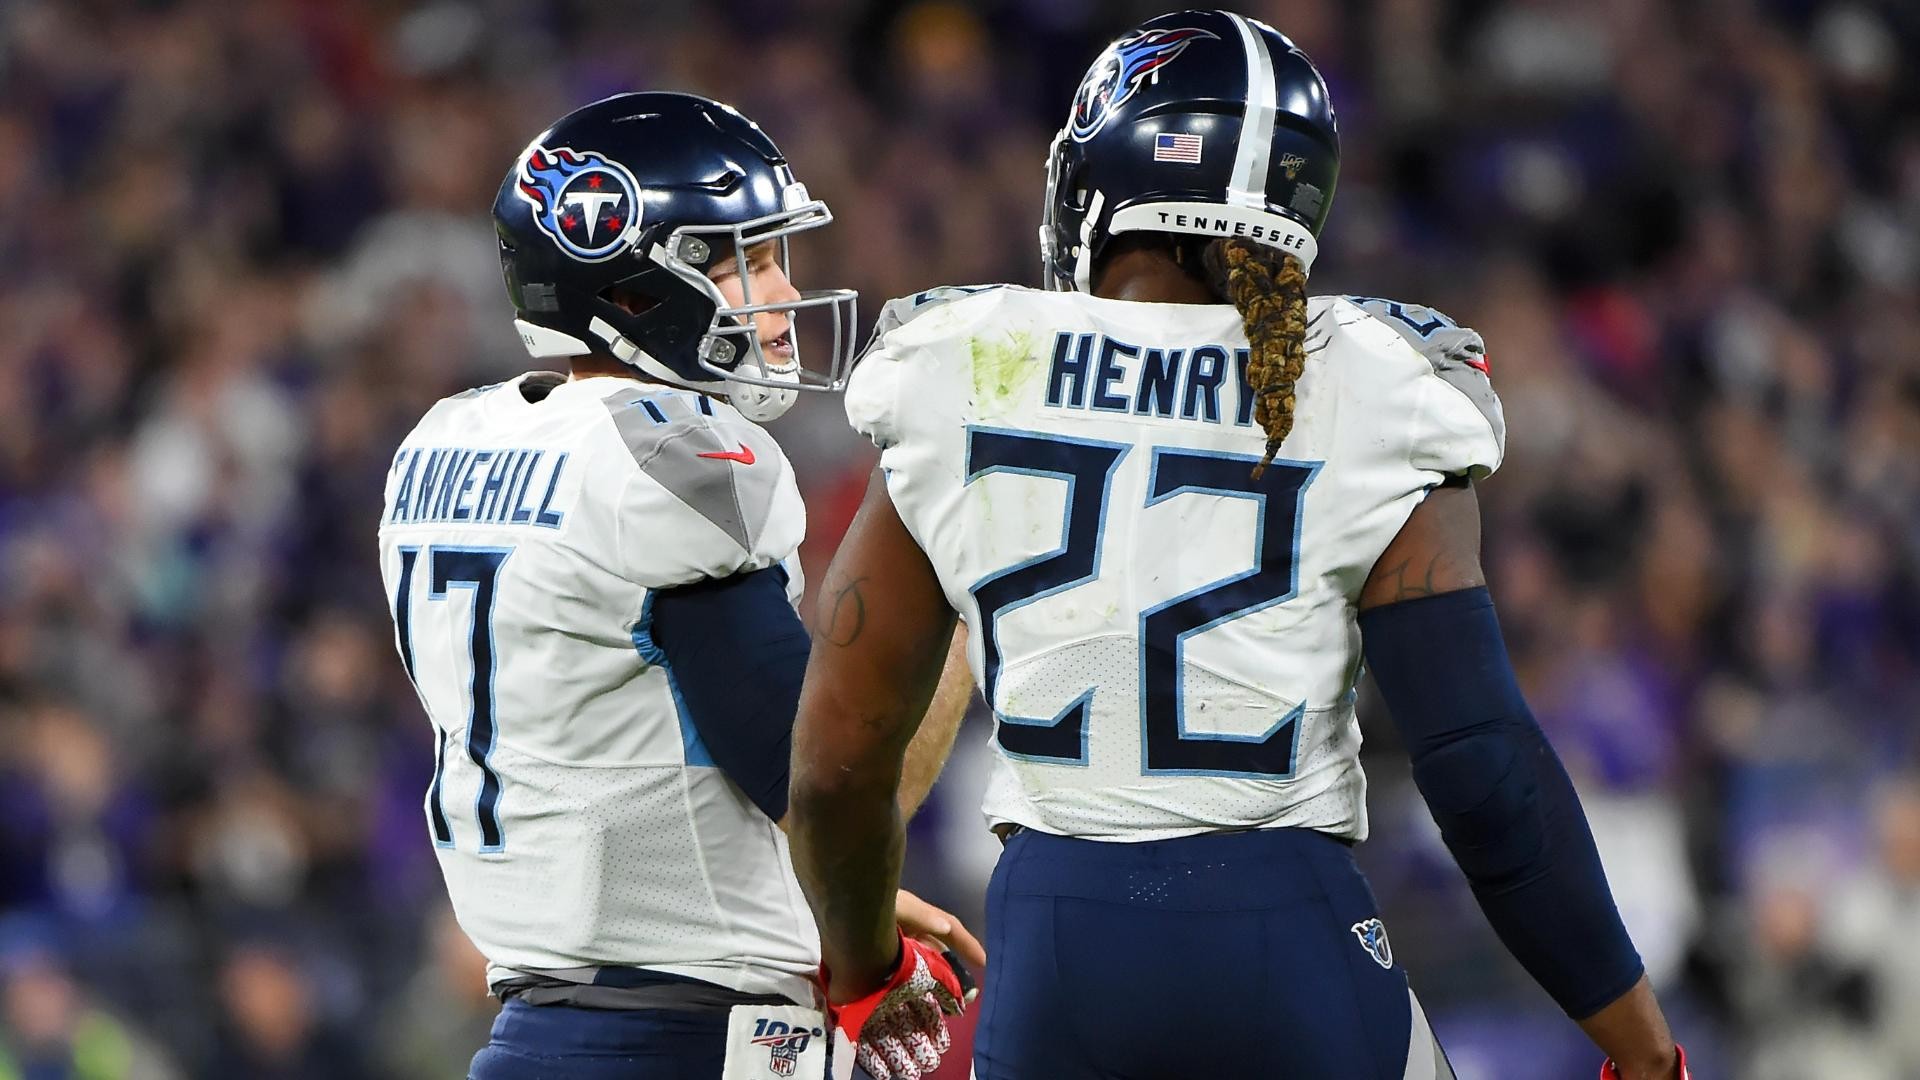 Henry and Tannehill lead Titans to AFC Championship